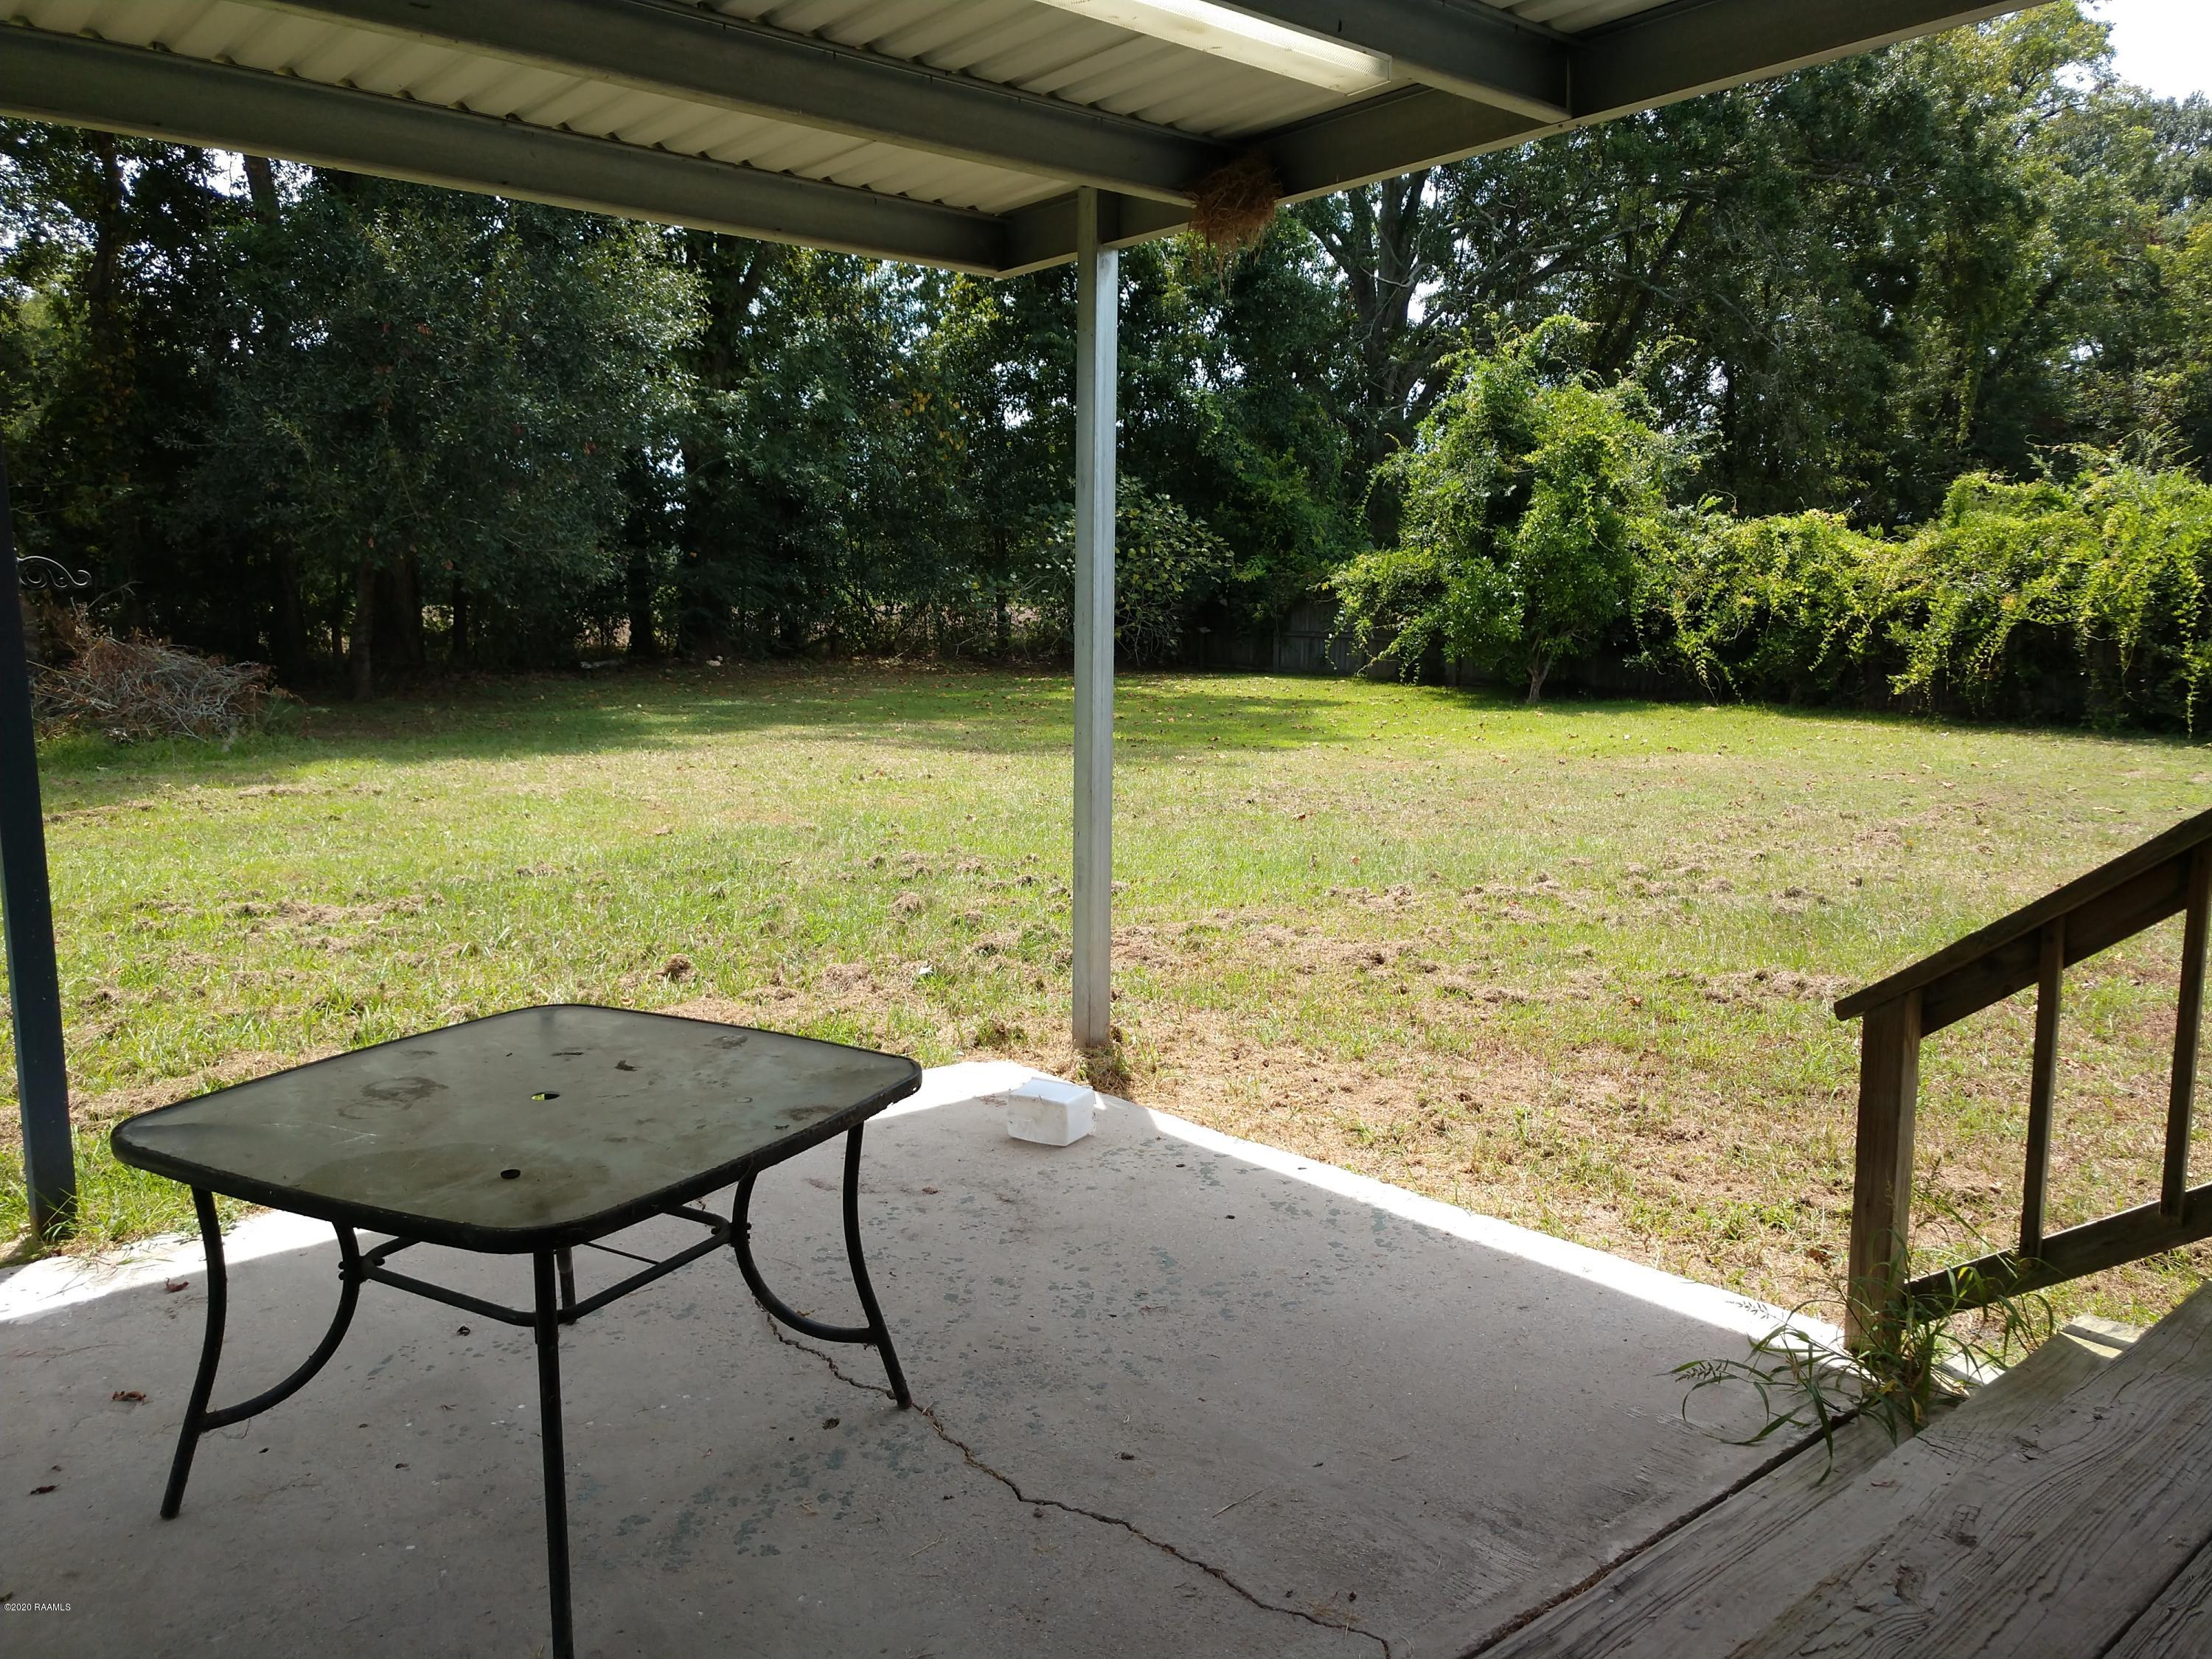 1043 Orchard Park Drive, Breaux Bridge, LA 70517 Photo #8